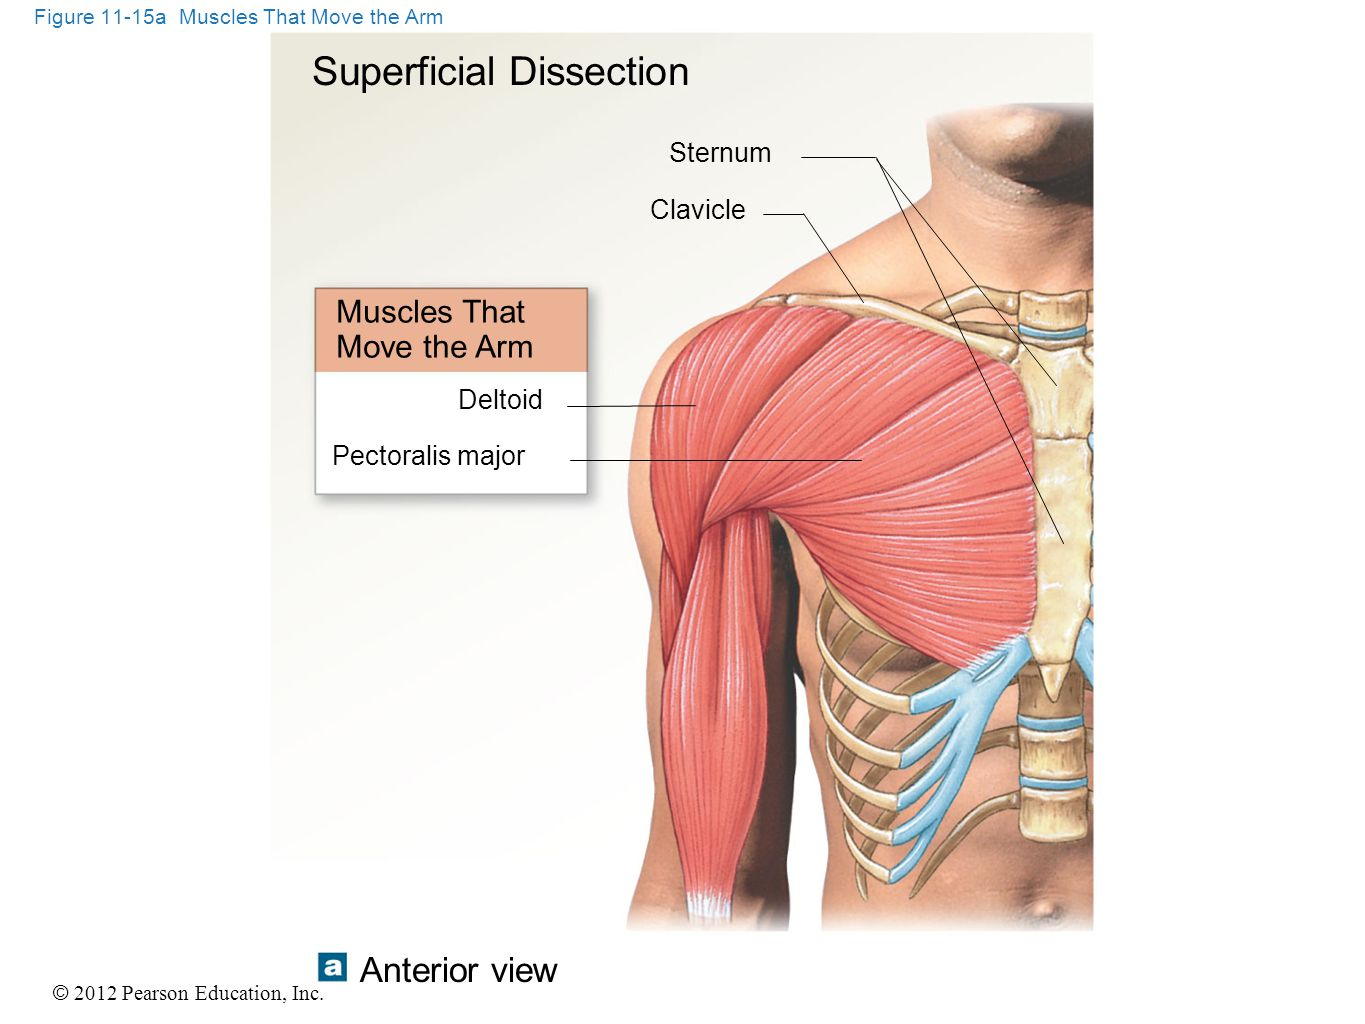 © 2012 Pearson Education, Inc. Figure 11-15a Muscles That Move the Arm Superficial Dissection Muscles That Move the Arm Deltoid Sternum Clavicle Pecto